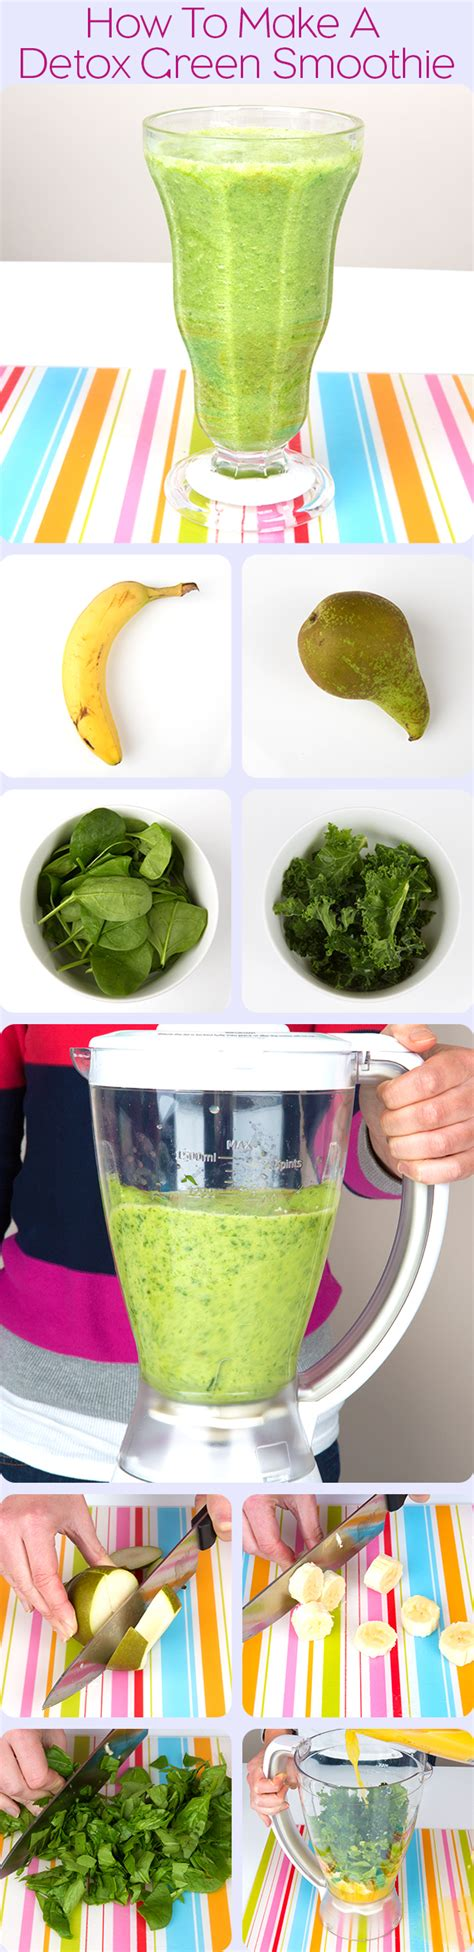 How To Make A Green Detox Smoothie by How To Make A Smoothie Driverlayer Search Engine